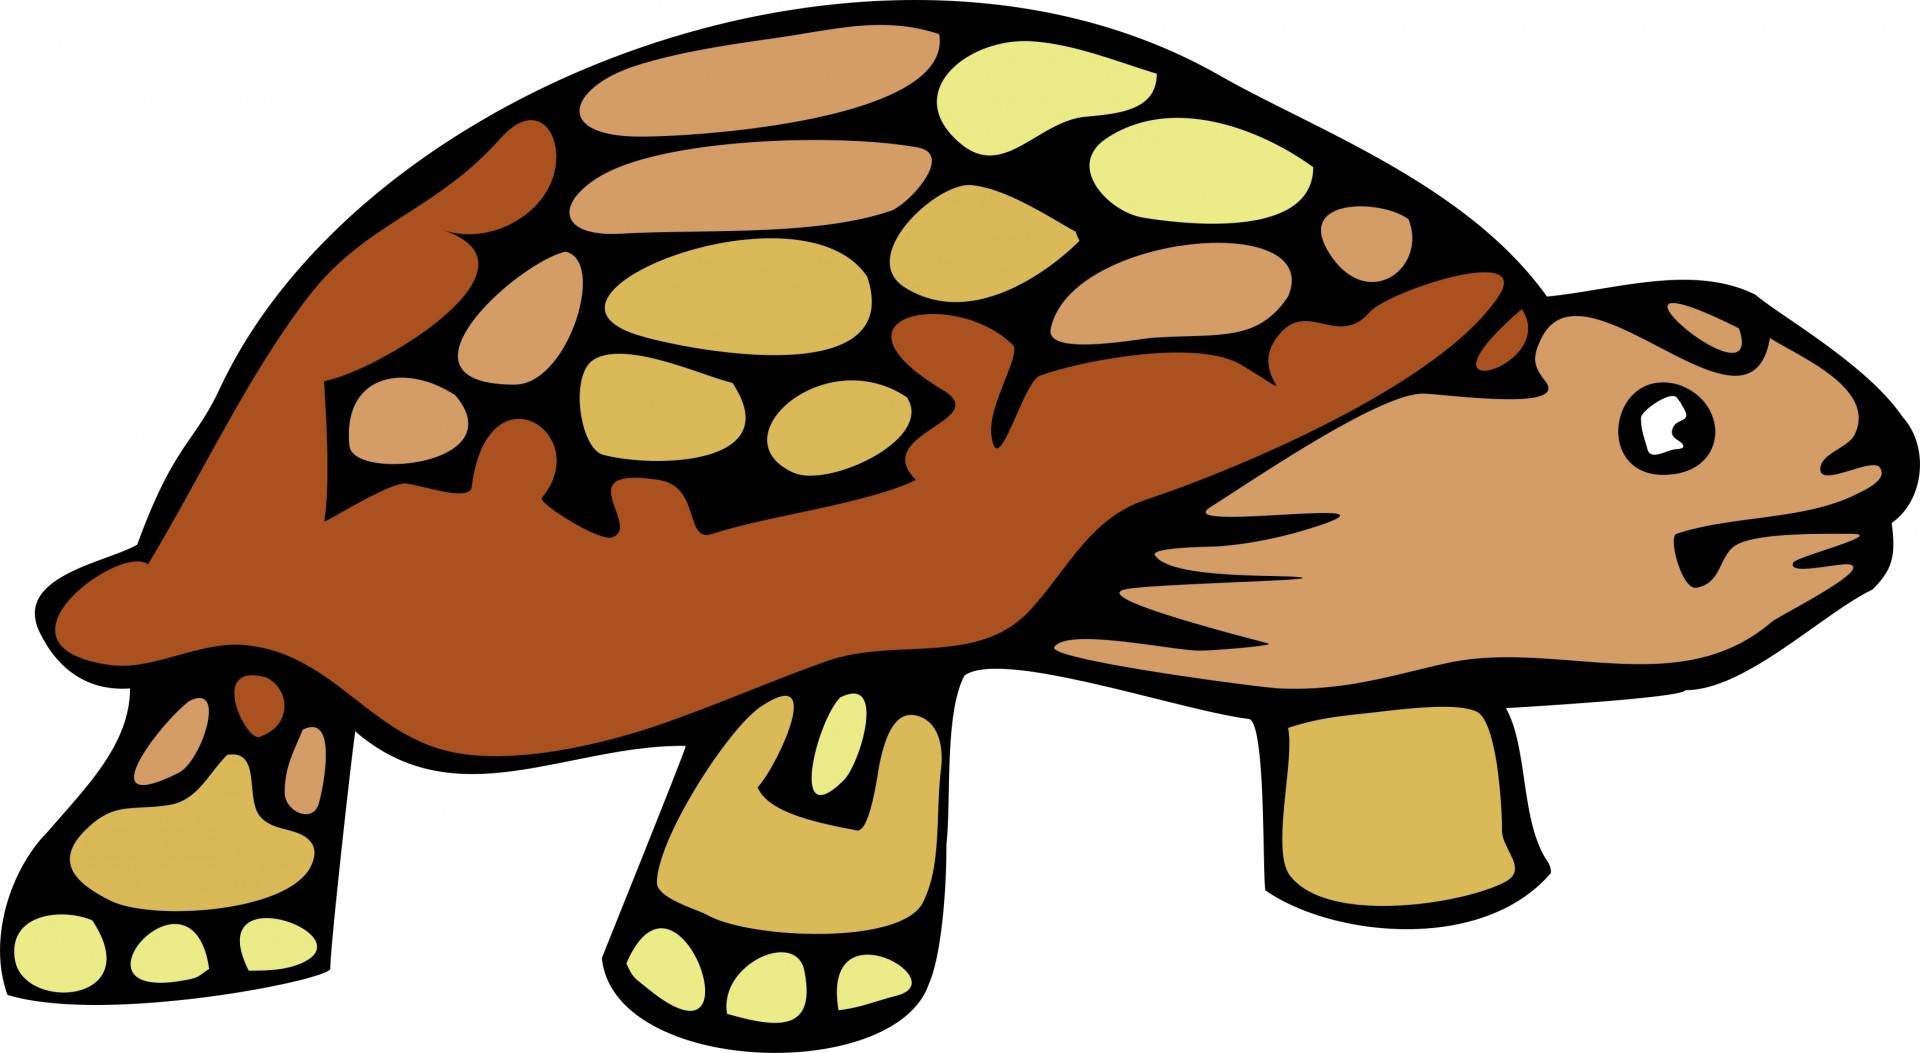 Turtoise clipart Free Stock Public Tortoise Cartoon